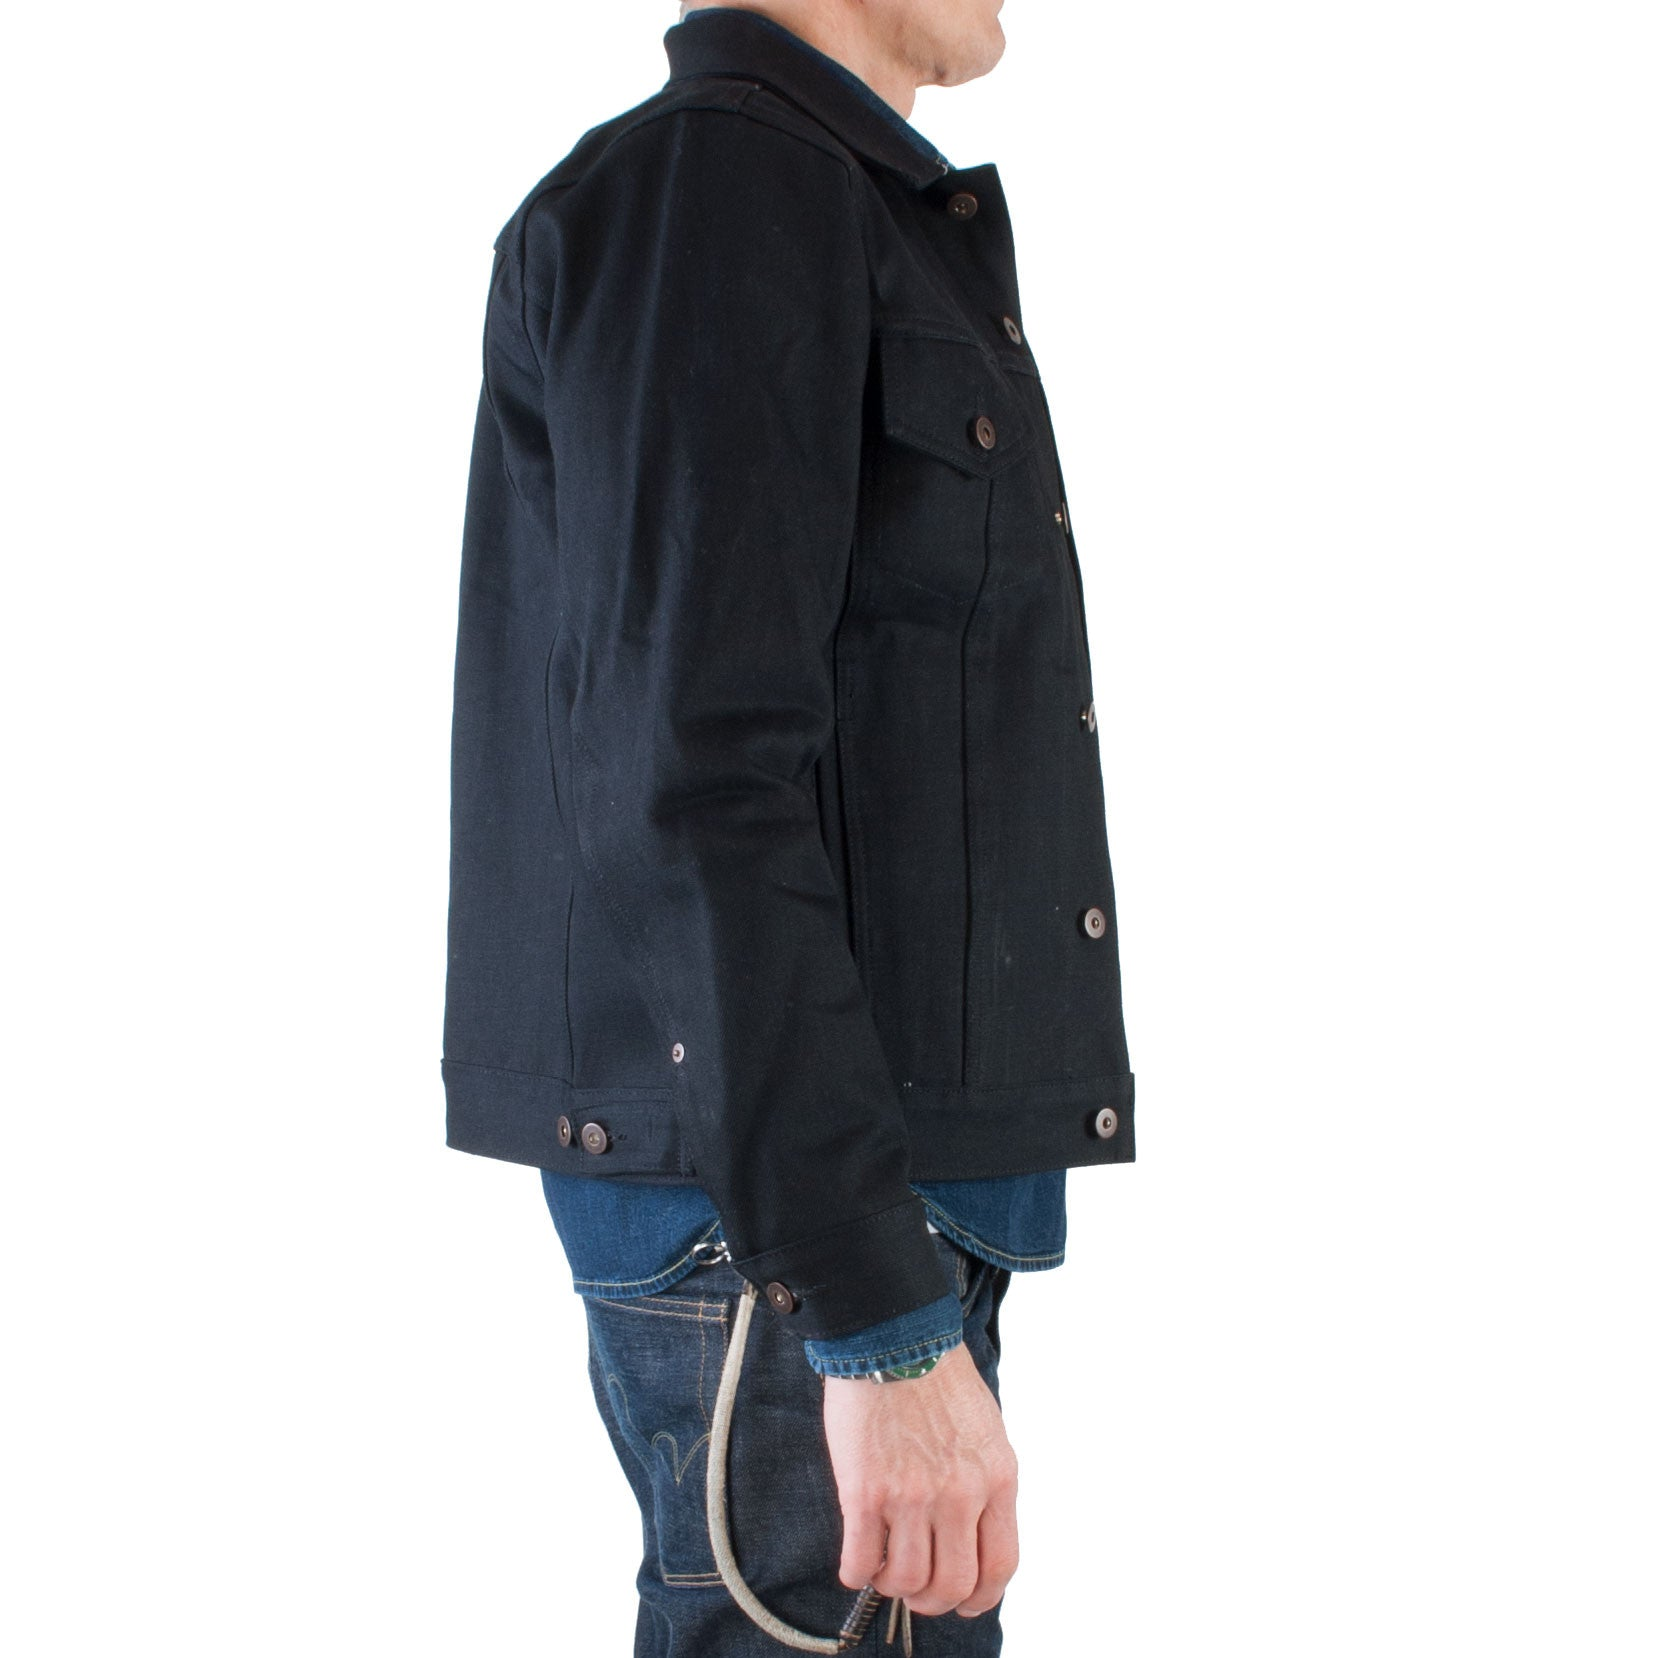 Tellason - Japanese Selvage Denim Jacket, 13.5 oz (Black) - Brund - 3